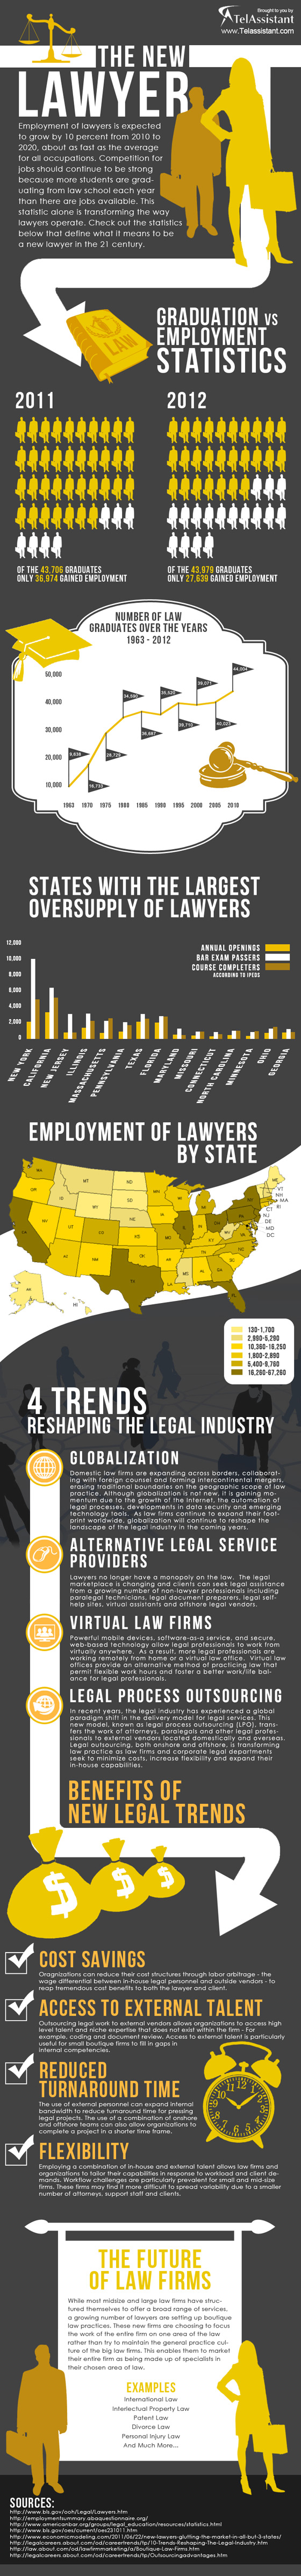 Lawyer Industry Statistics and Trends 124 Catchy Law Firm Slogans and Attorney Taglines